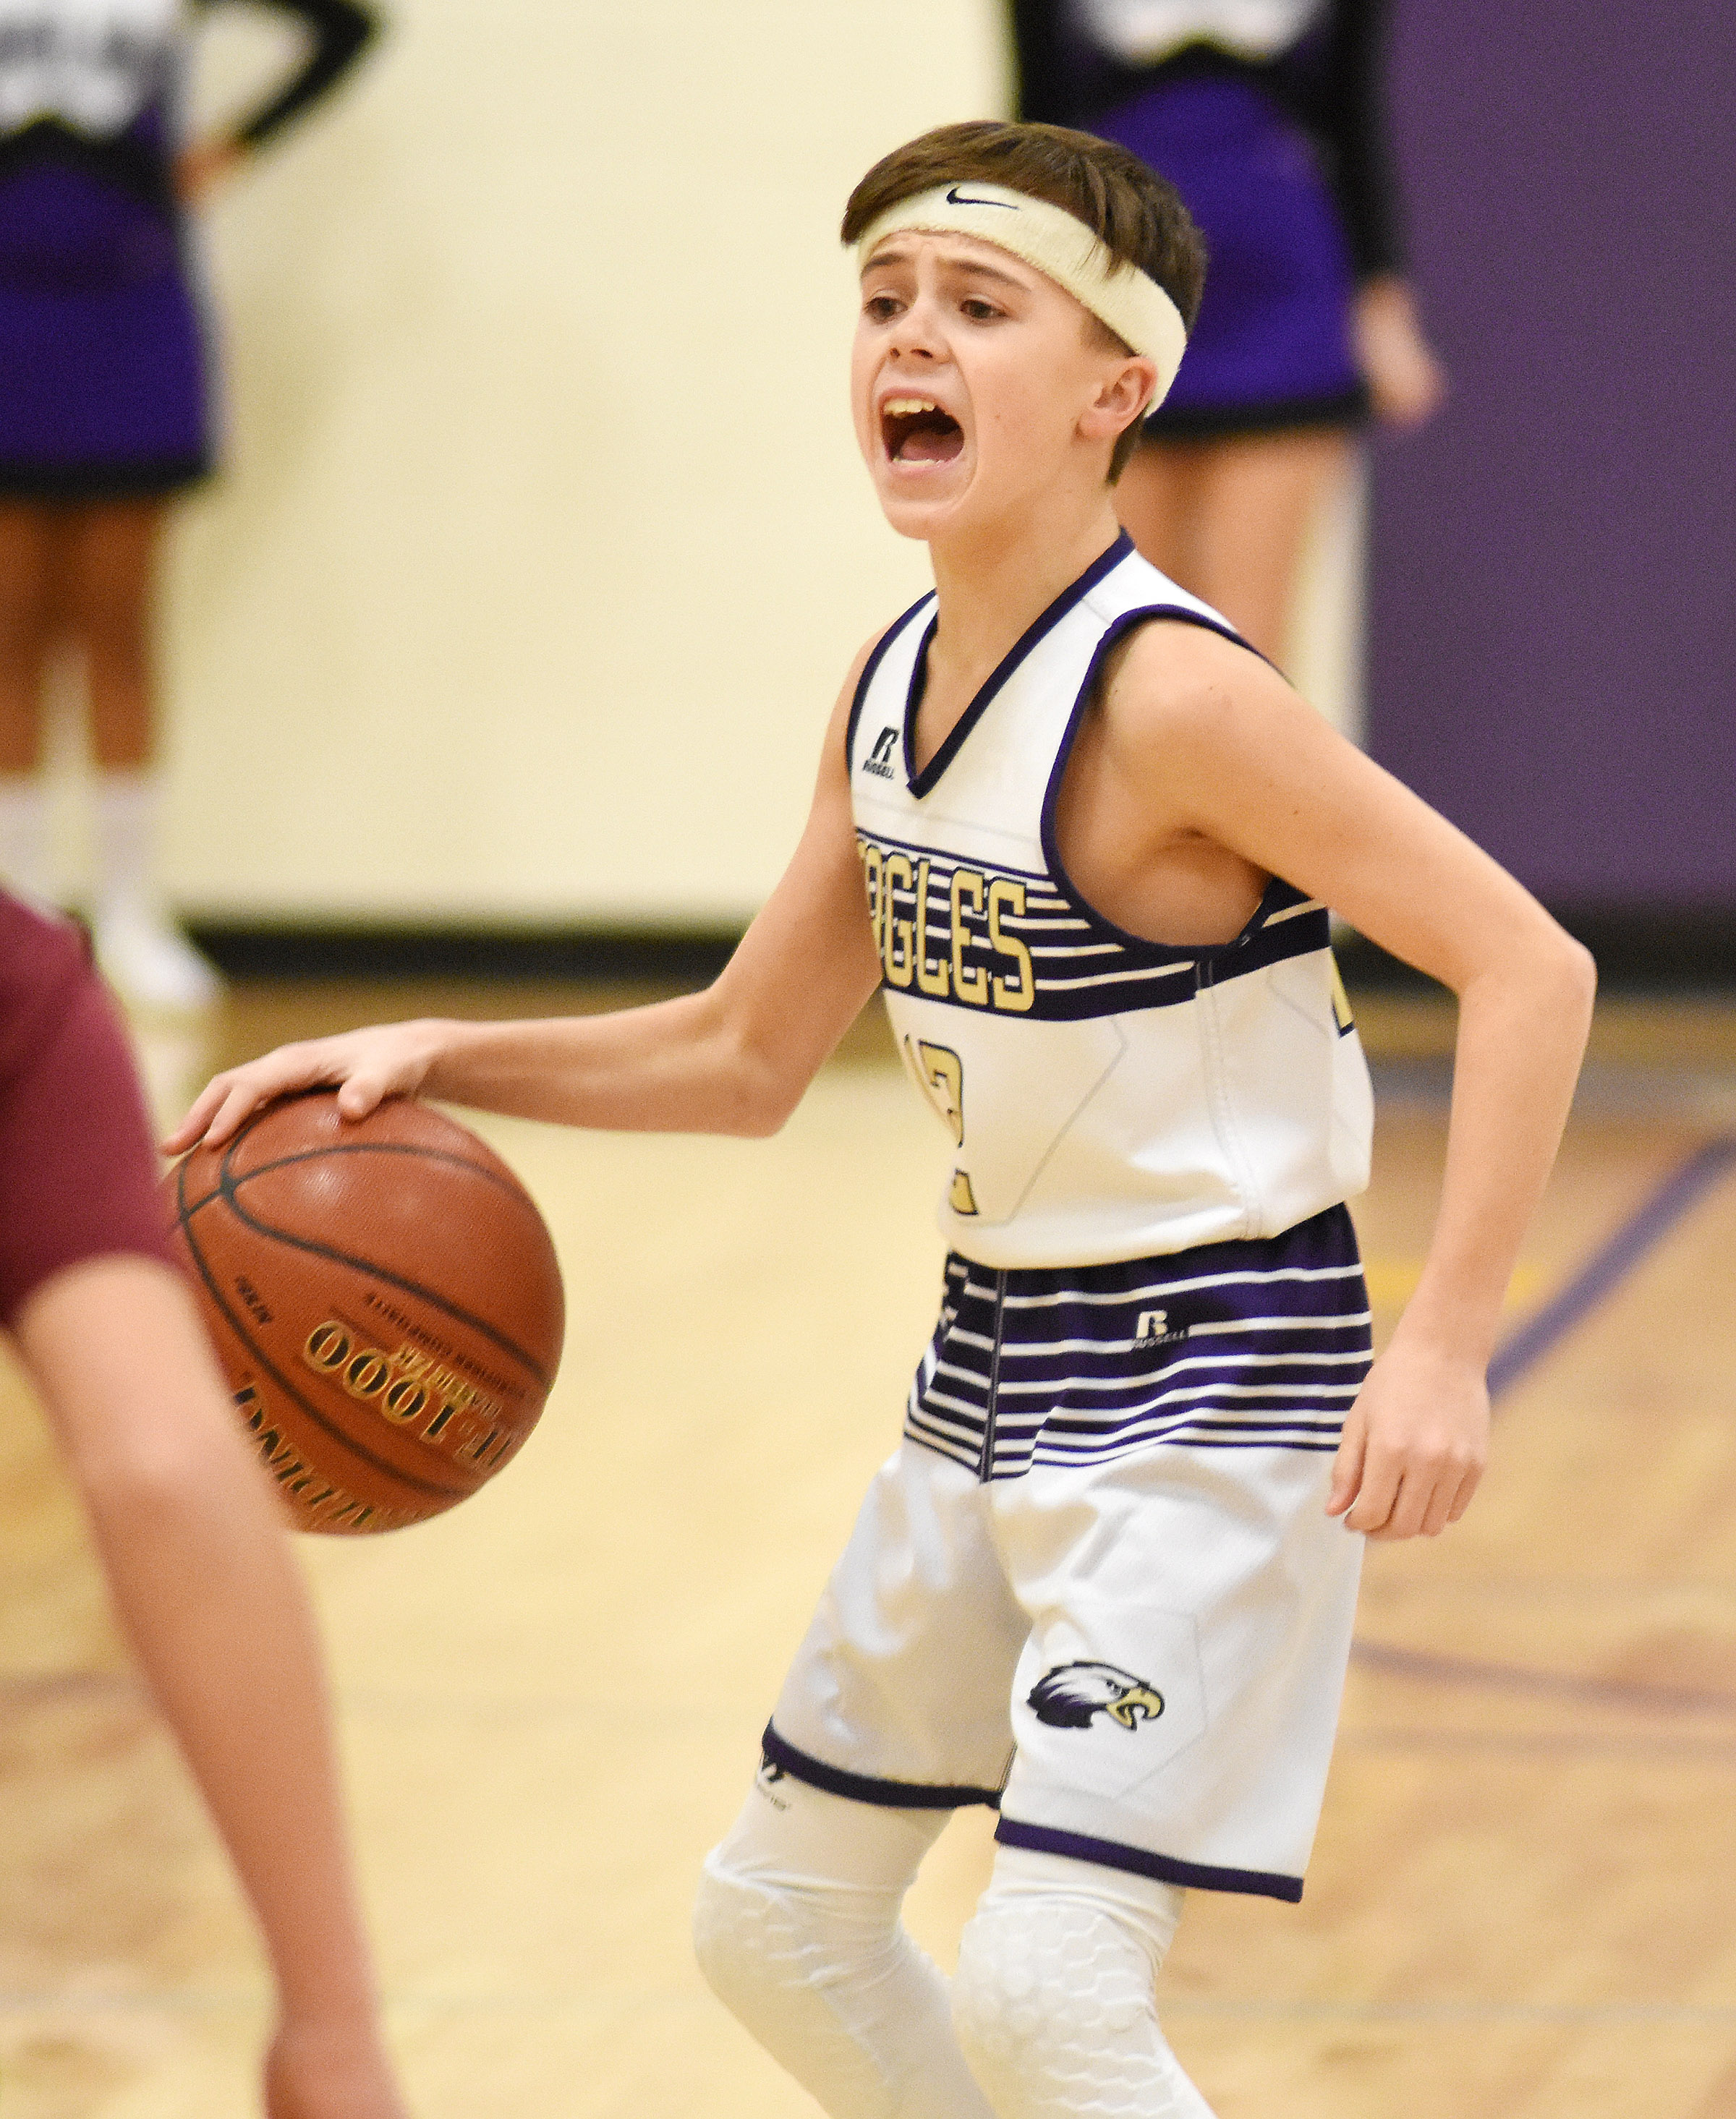 CMS seventh-grader Chase Hord calls a play.